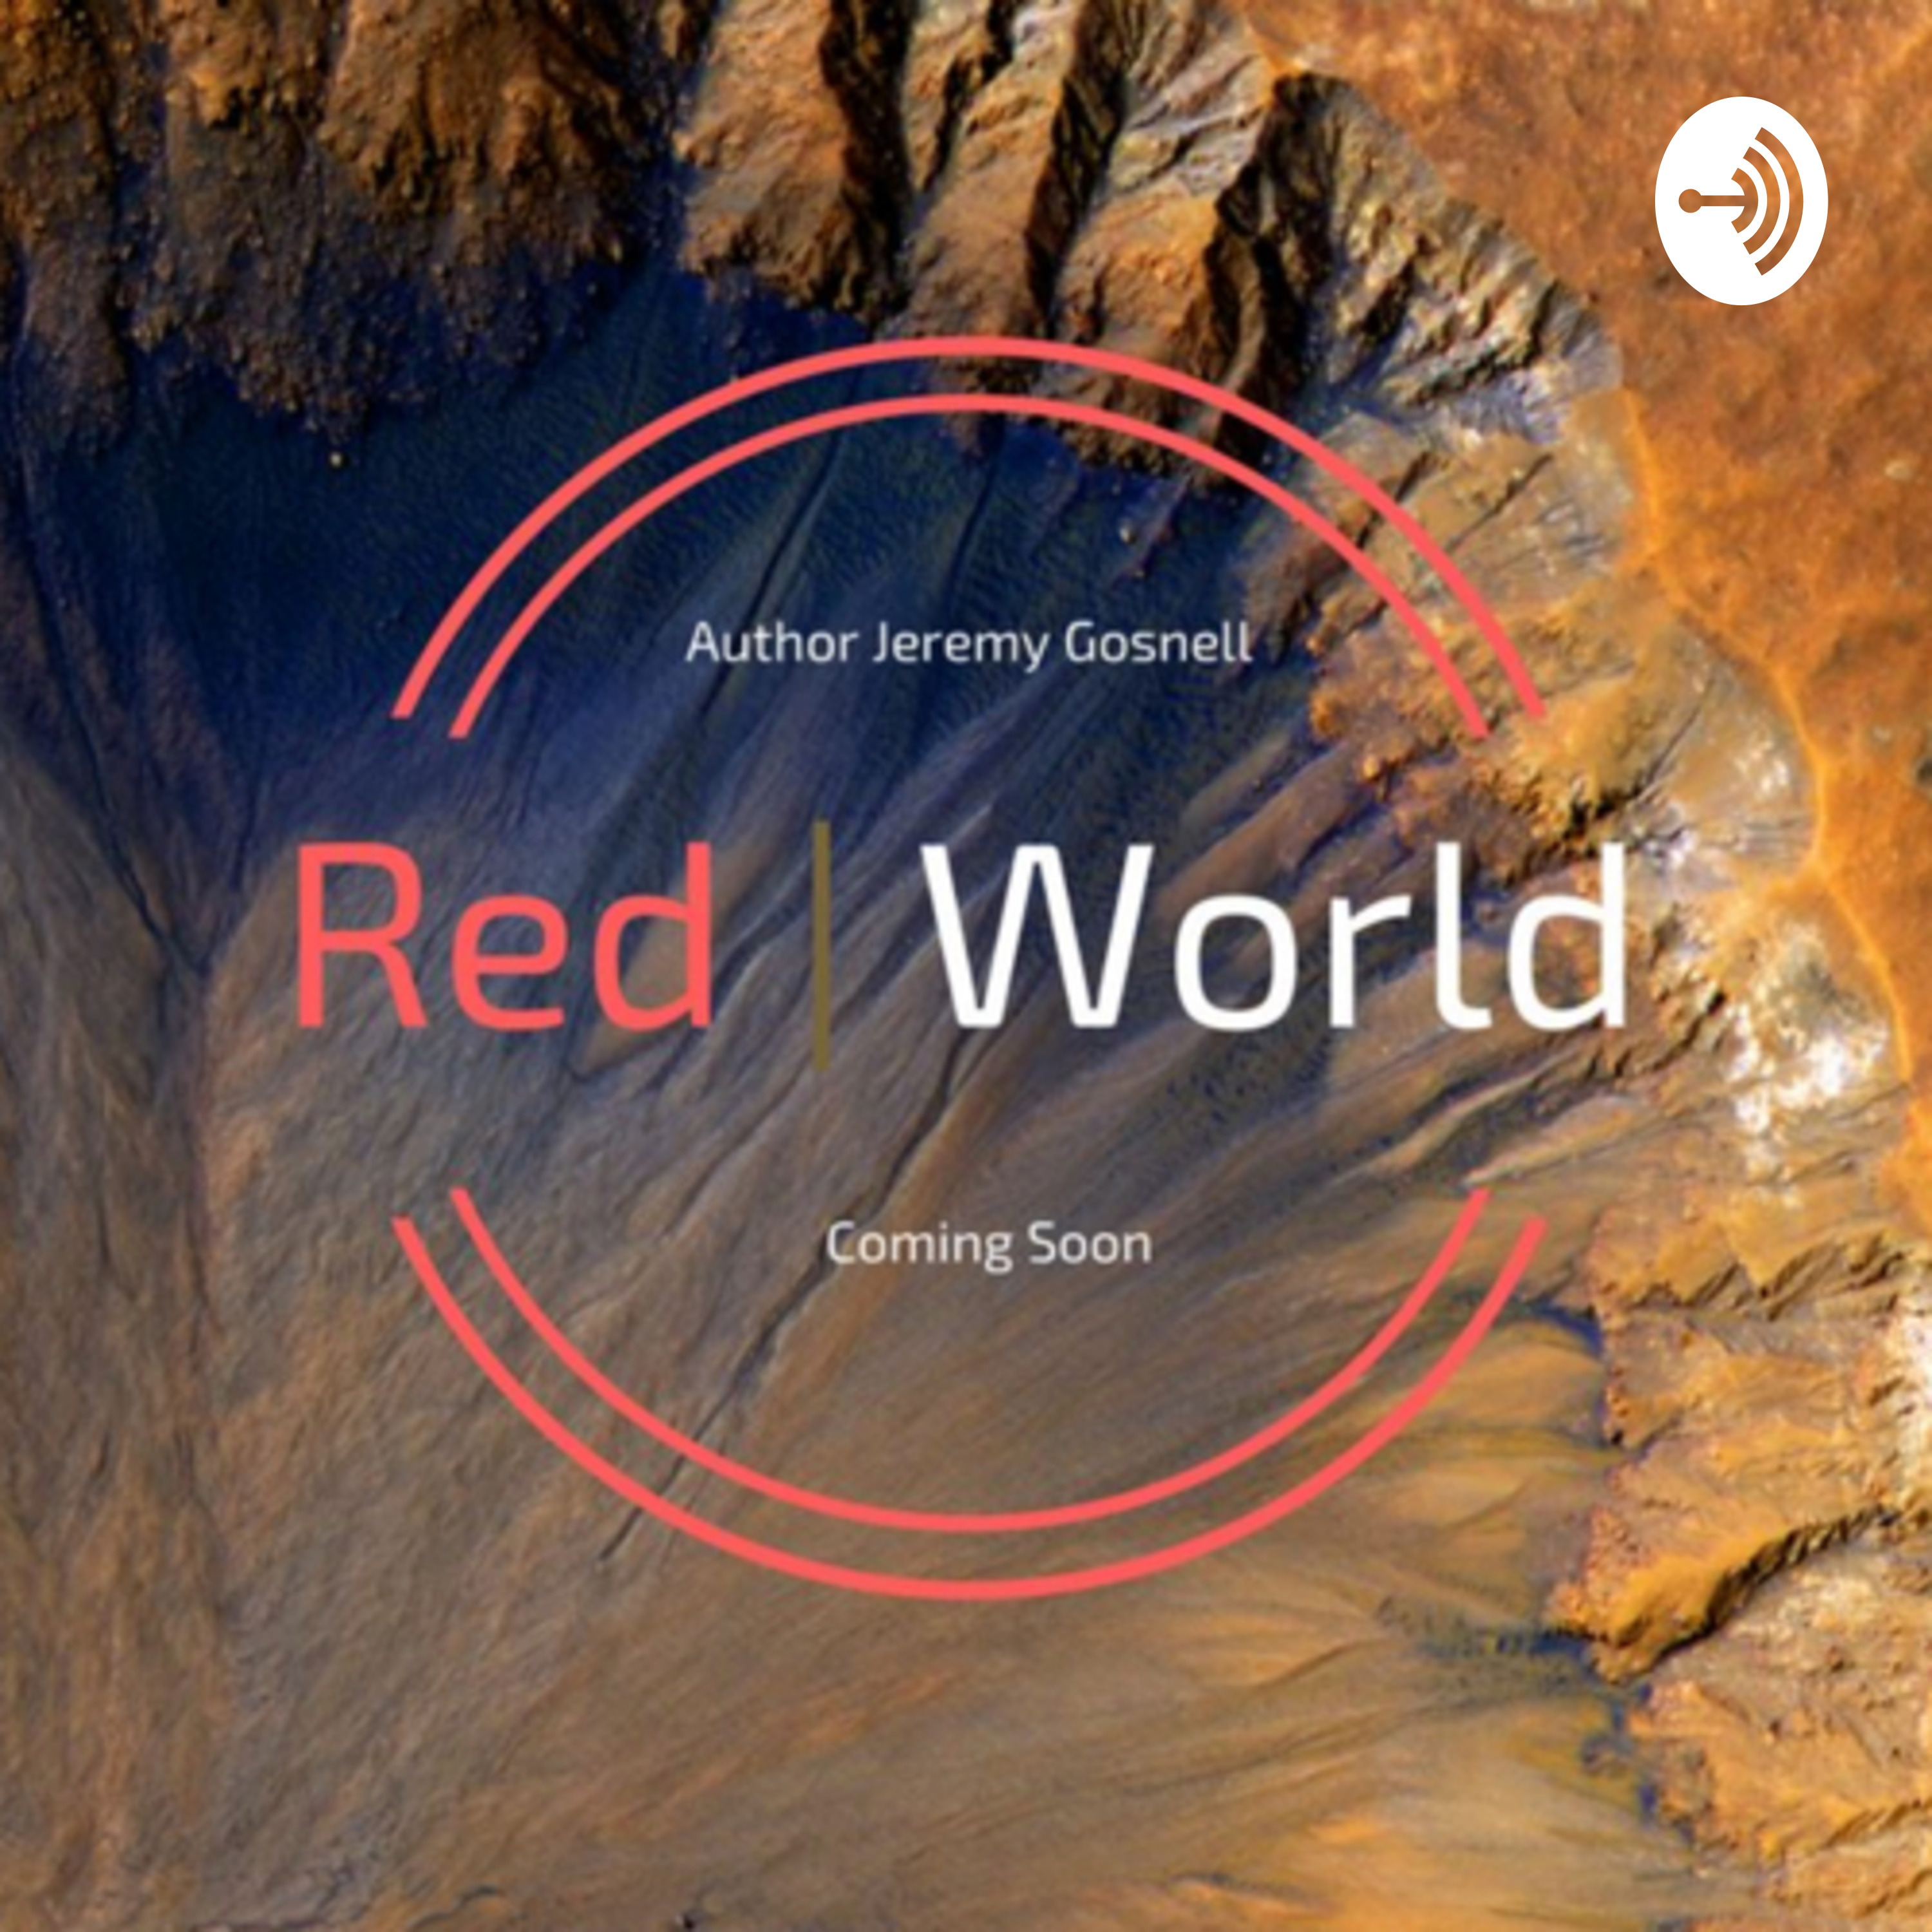 Red World Prologue: parts 1 and 2